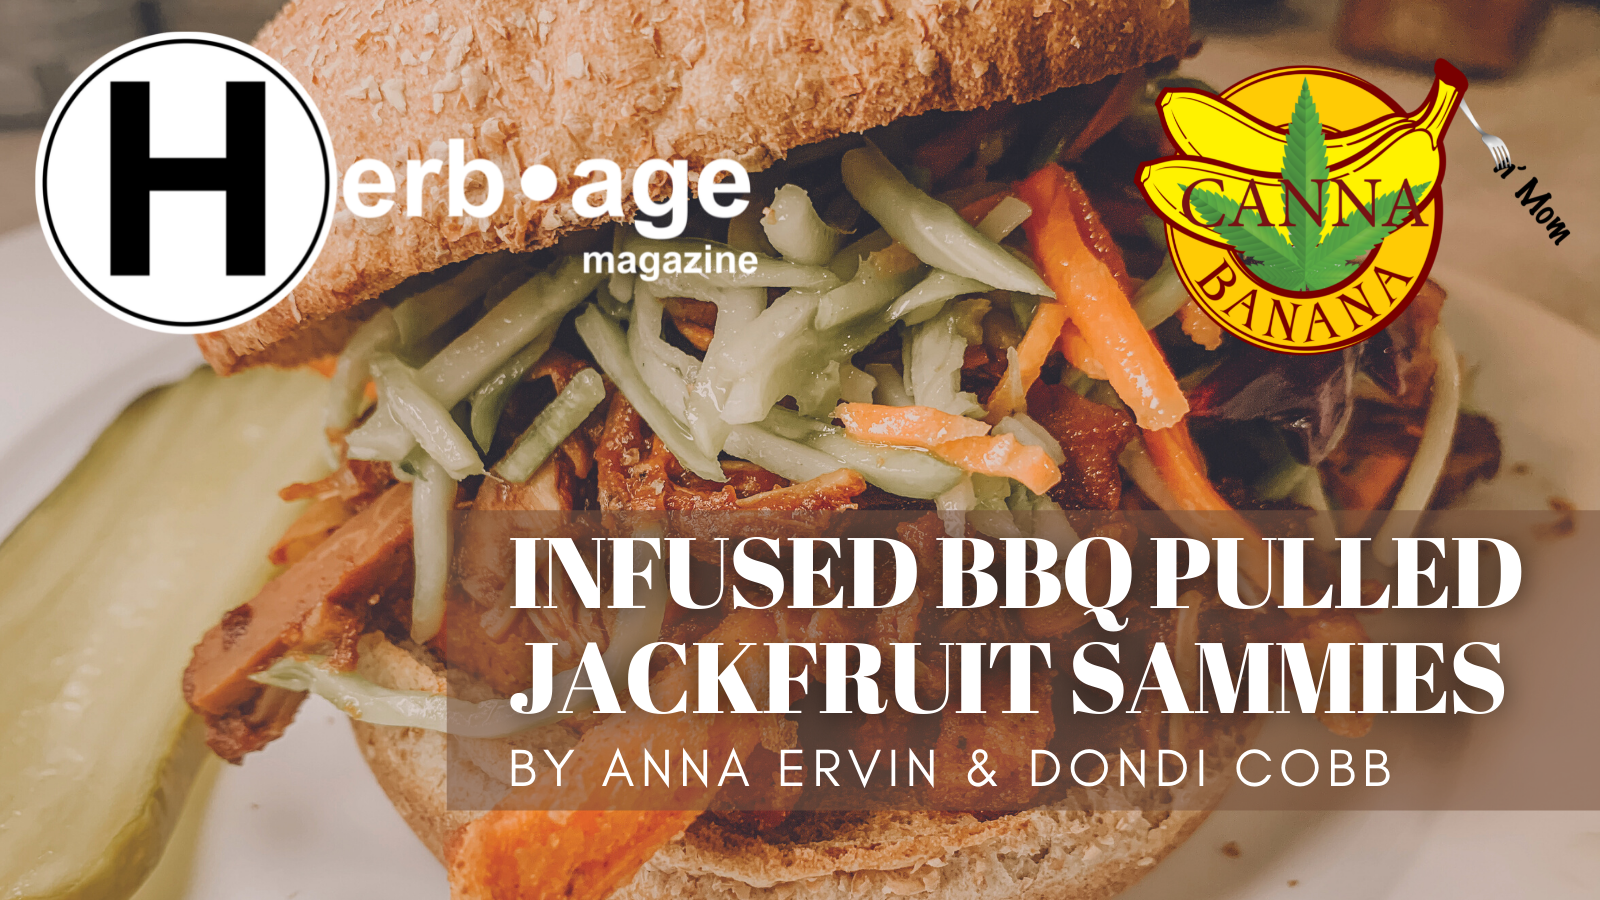 Infused BBQ Pulled Jackfruit Sammies with Medicated Broccoli Slaw